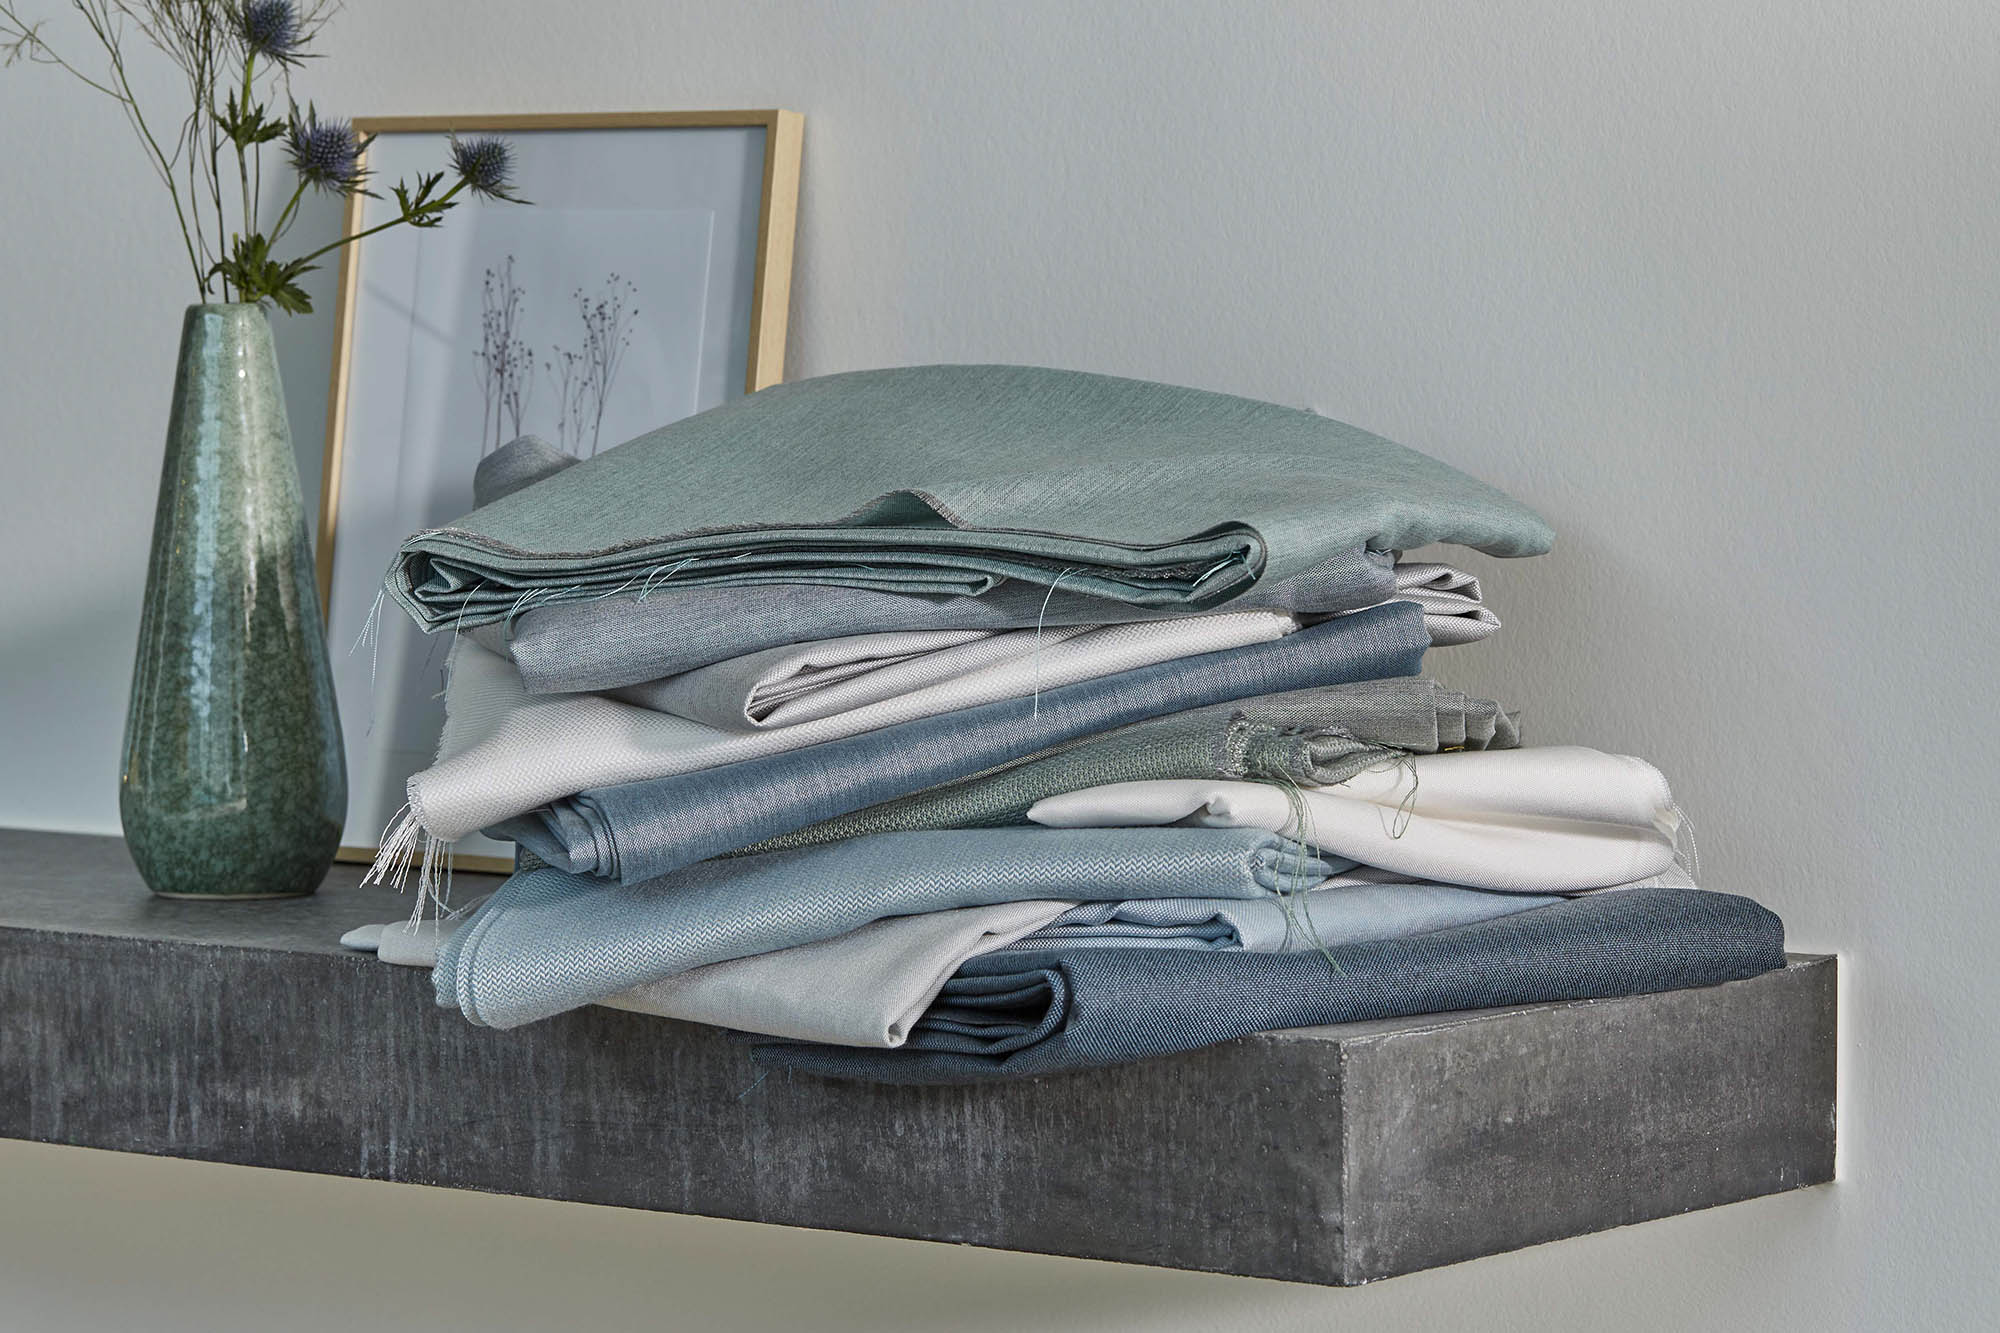 stack of folded sunbrella fabrics on shelf